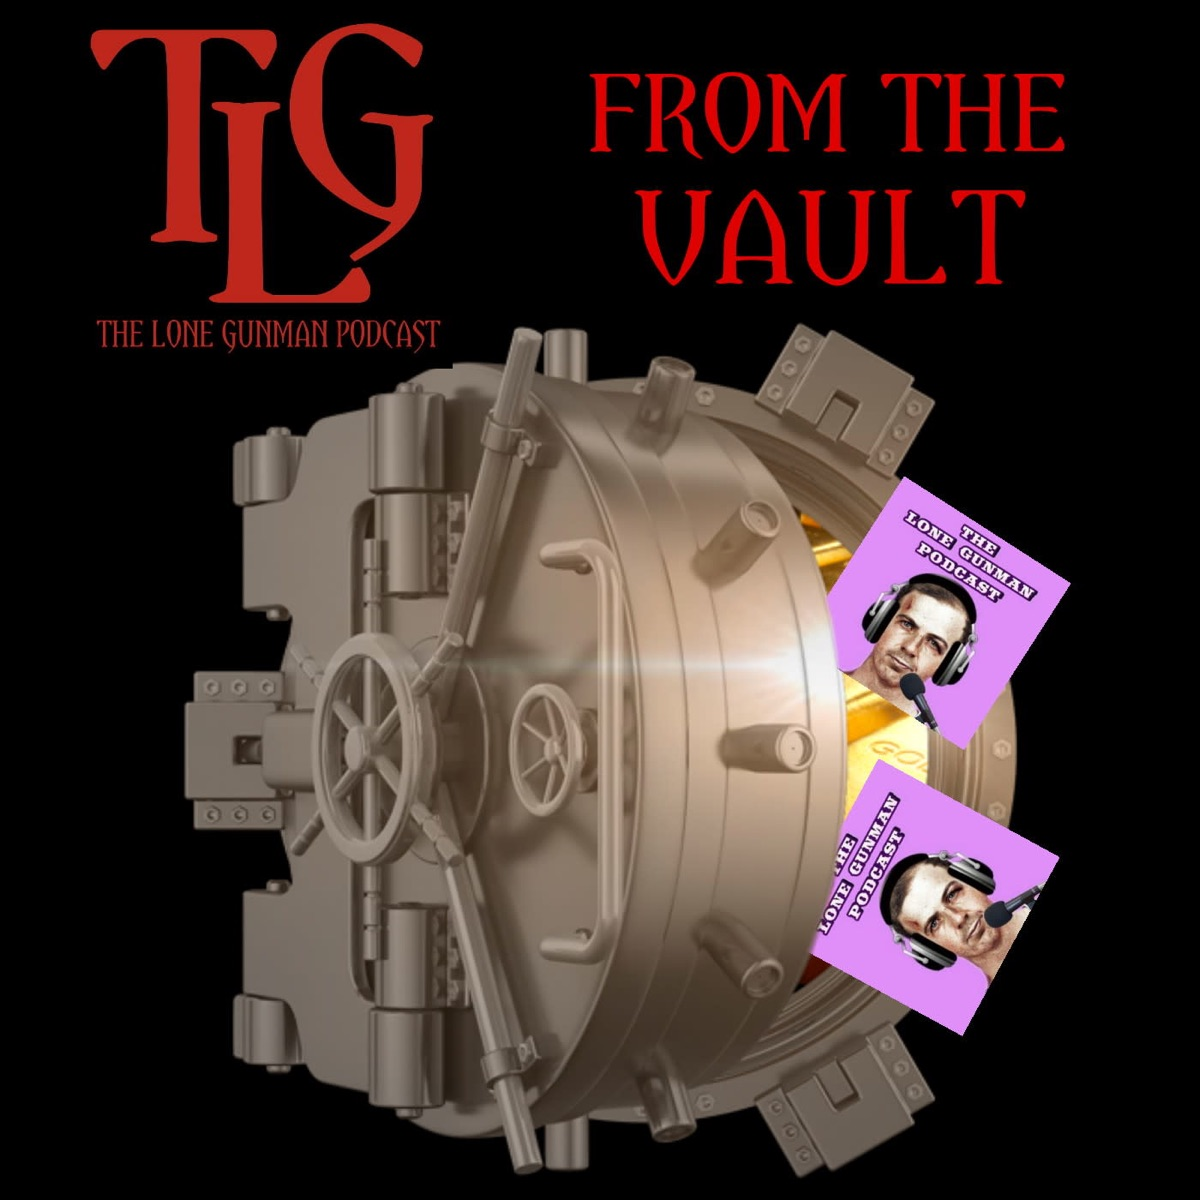 The Lone Gunman - From The Vault